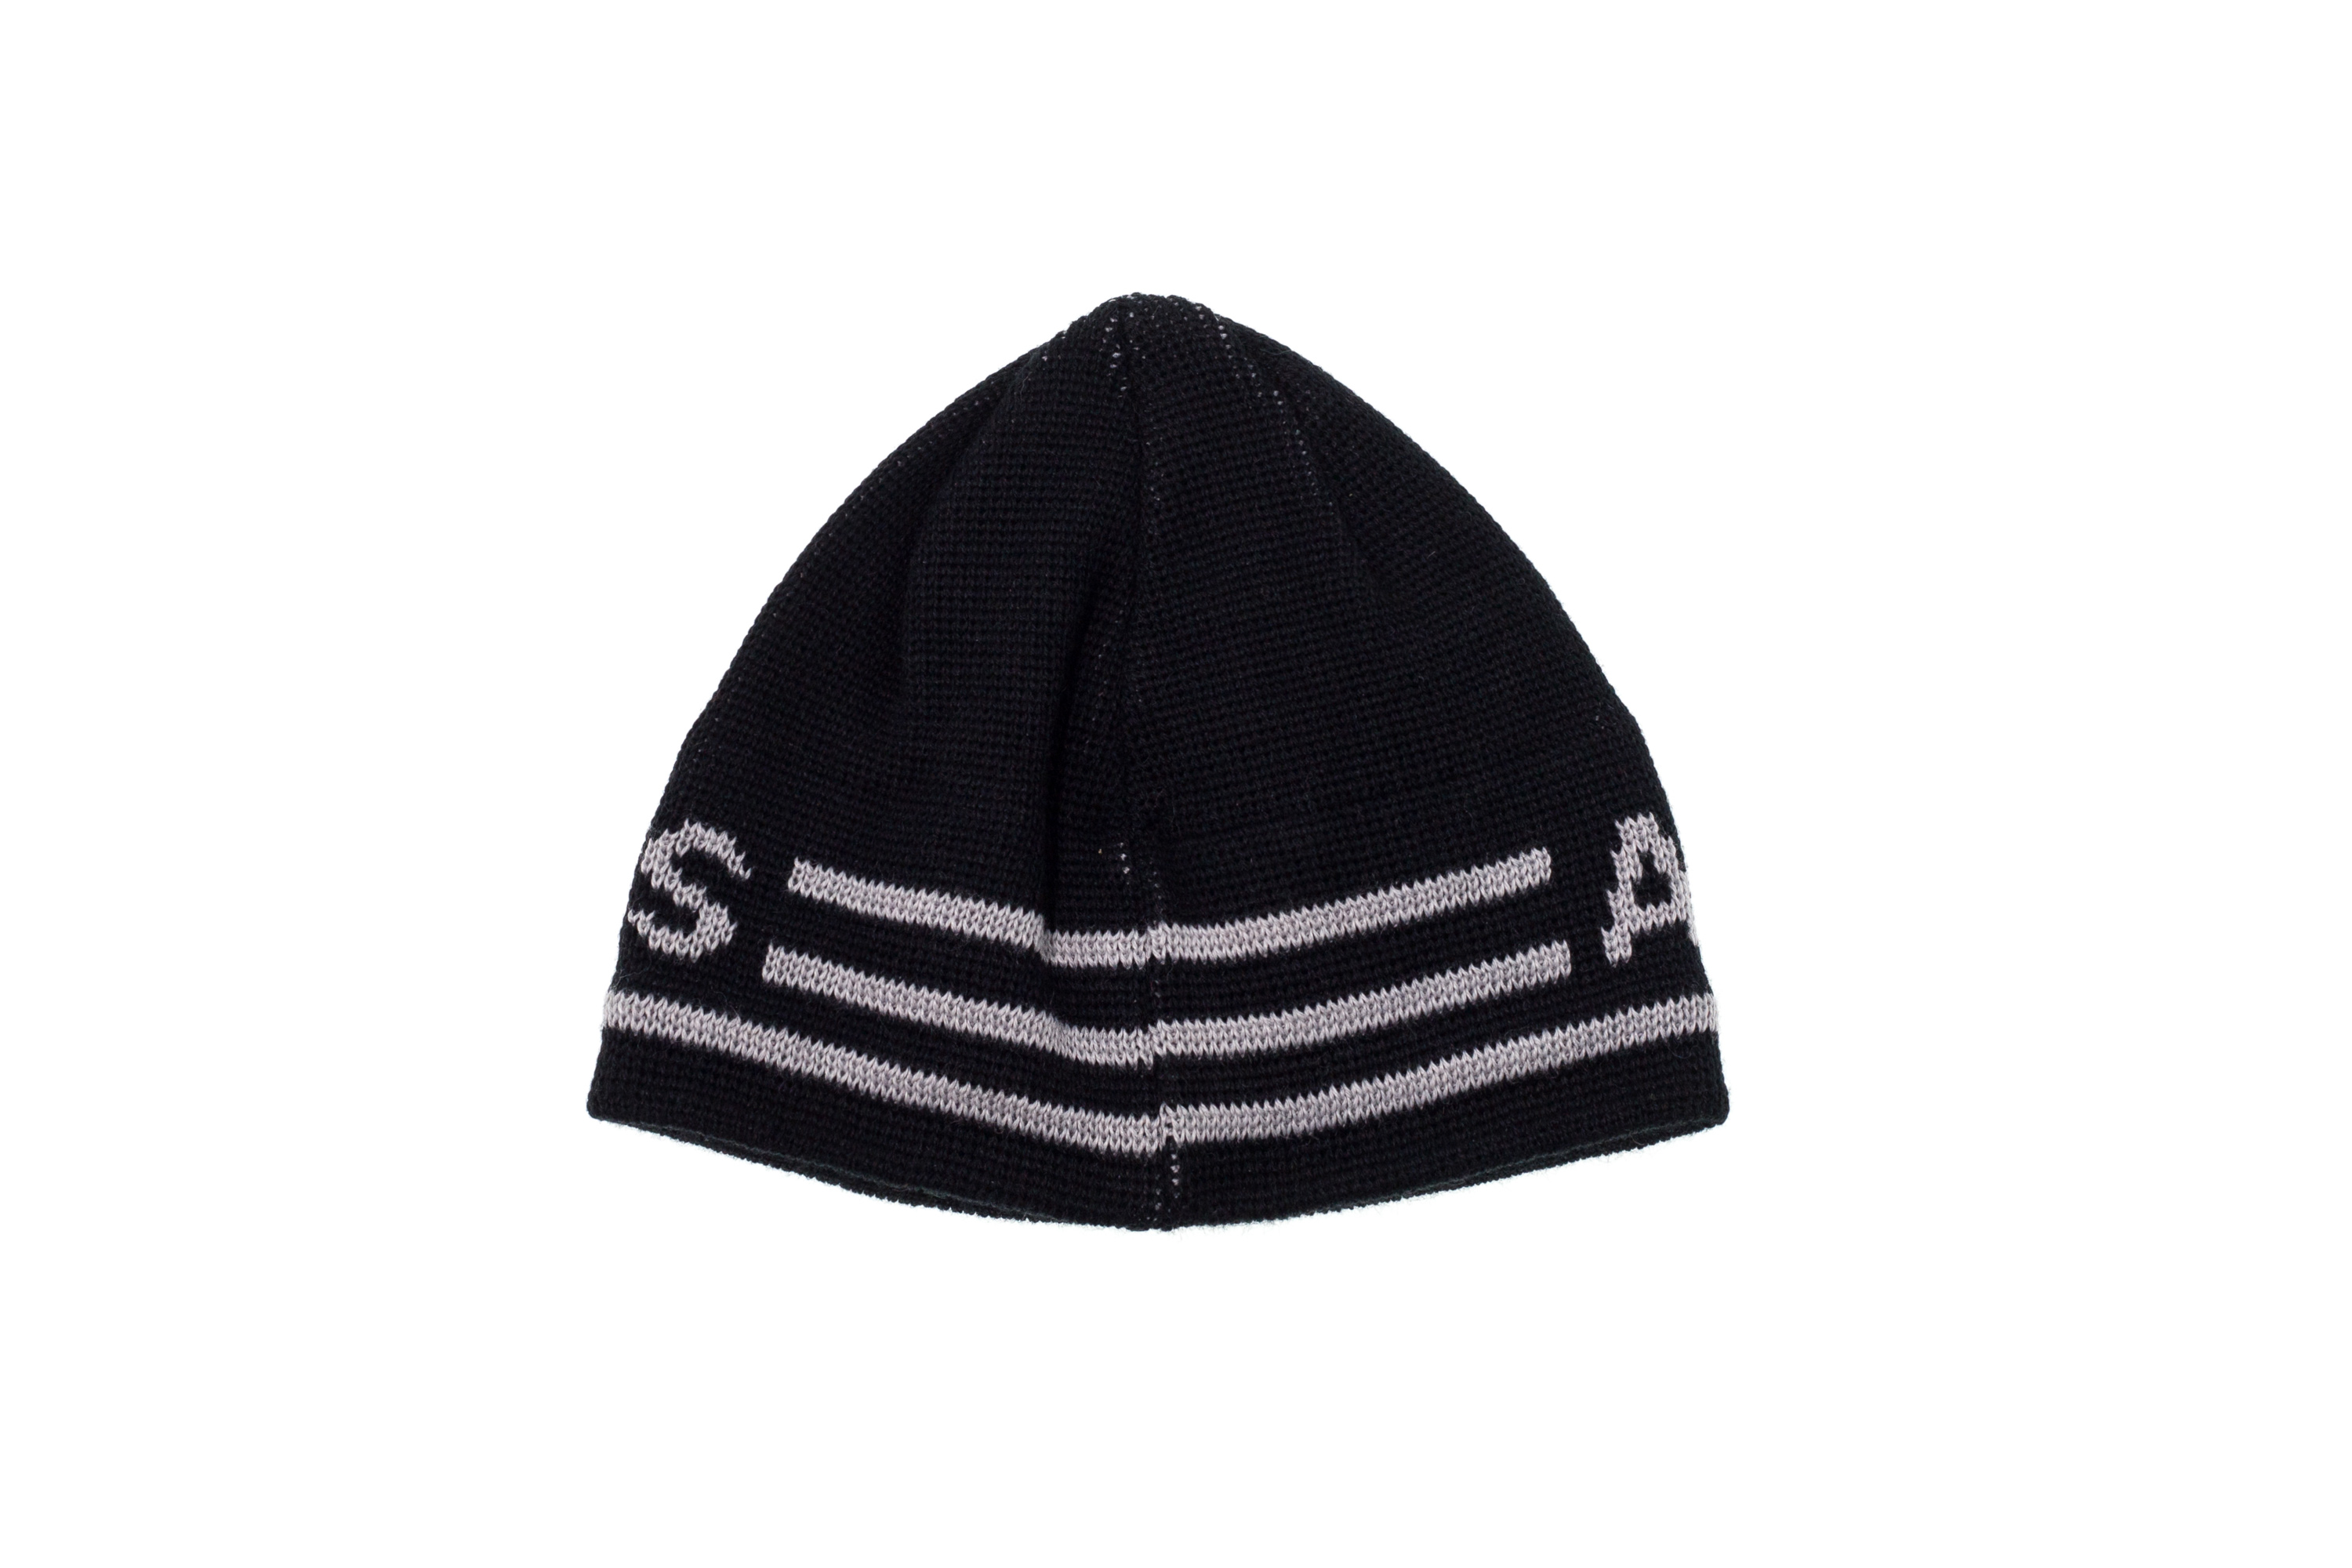 Details about ARMANI JEANS Men Winter Cuff BEANIE Hat Knit Cap Black Wool  Blend Gray Logo 44232782288